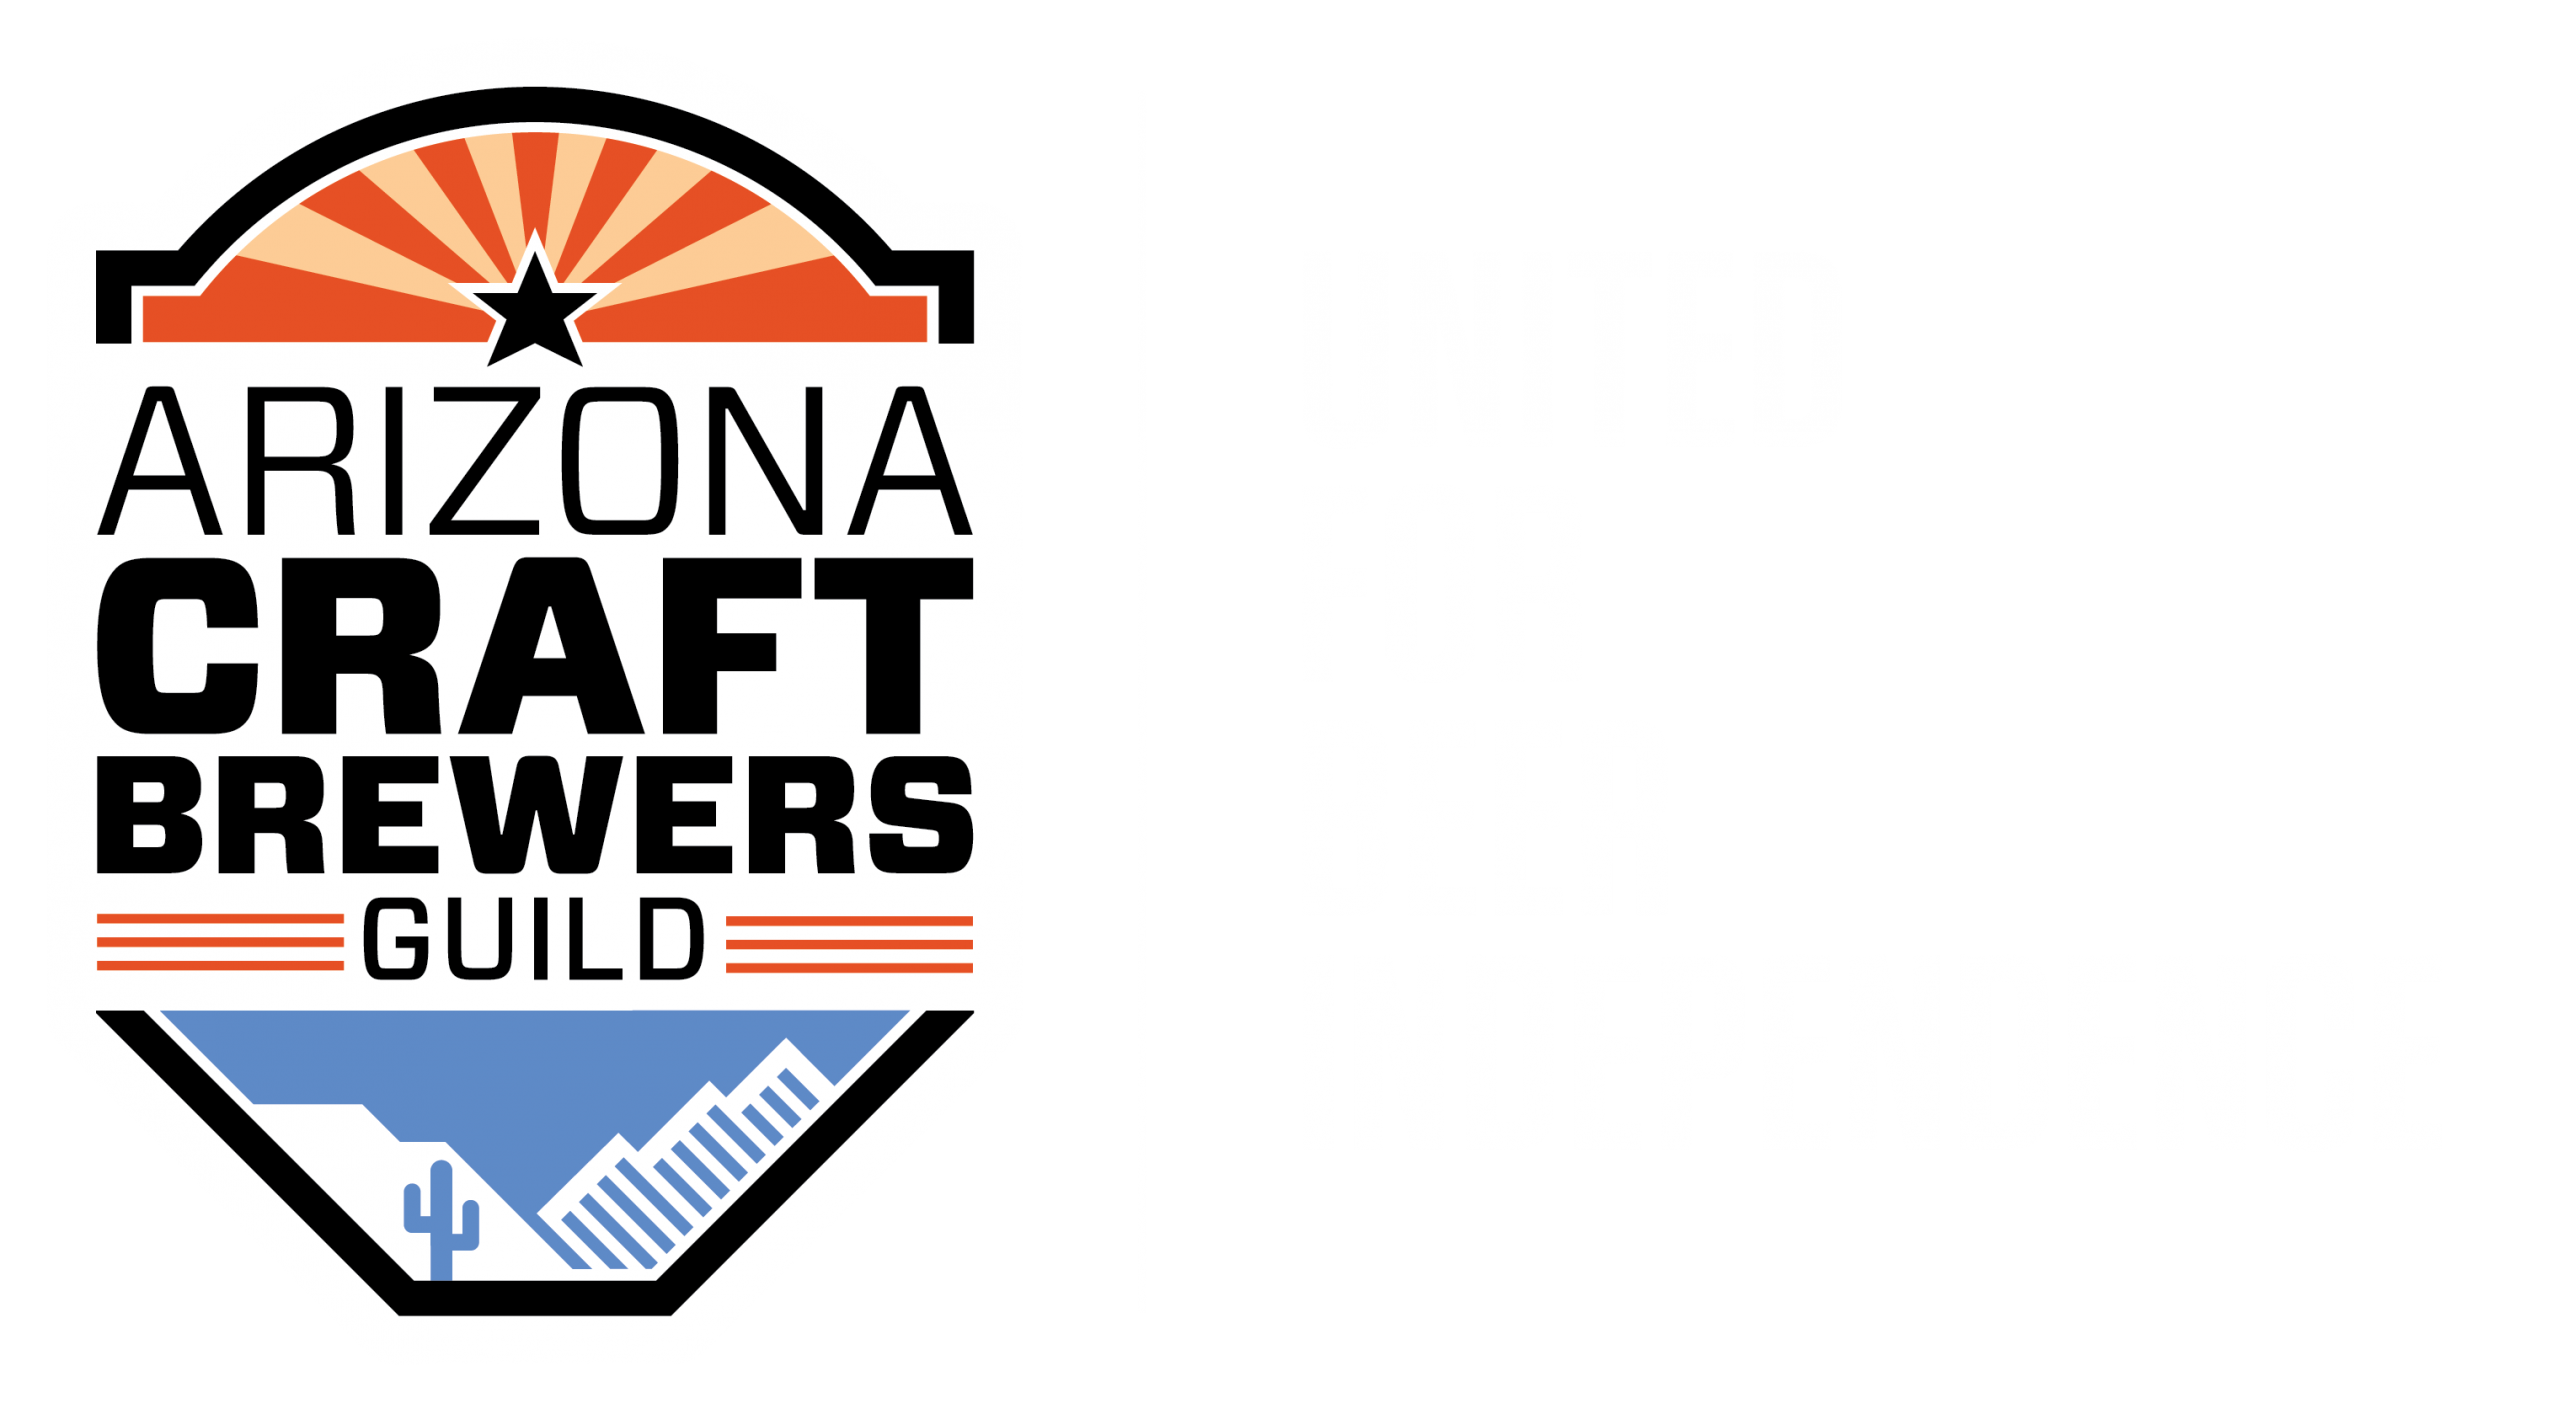 Kitsune Beer Company | Arizona Craft Brewers Guild